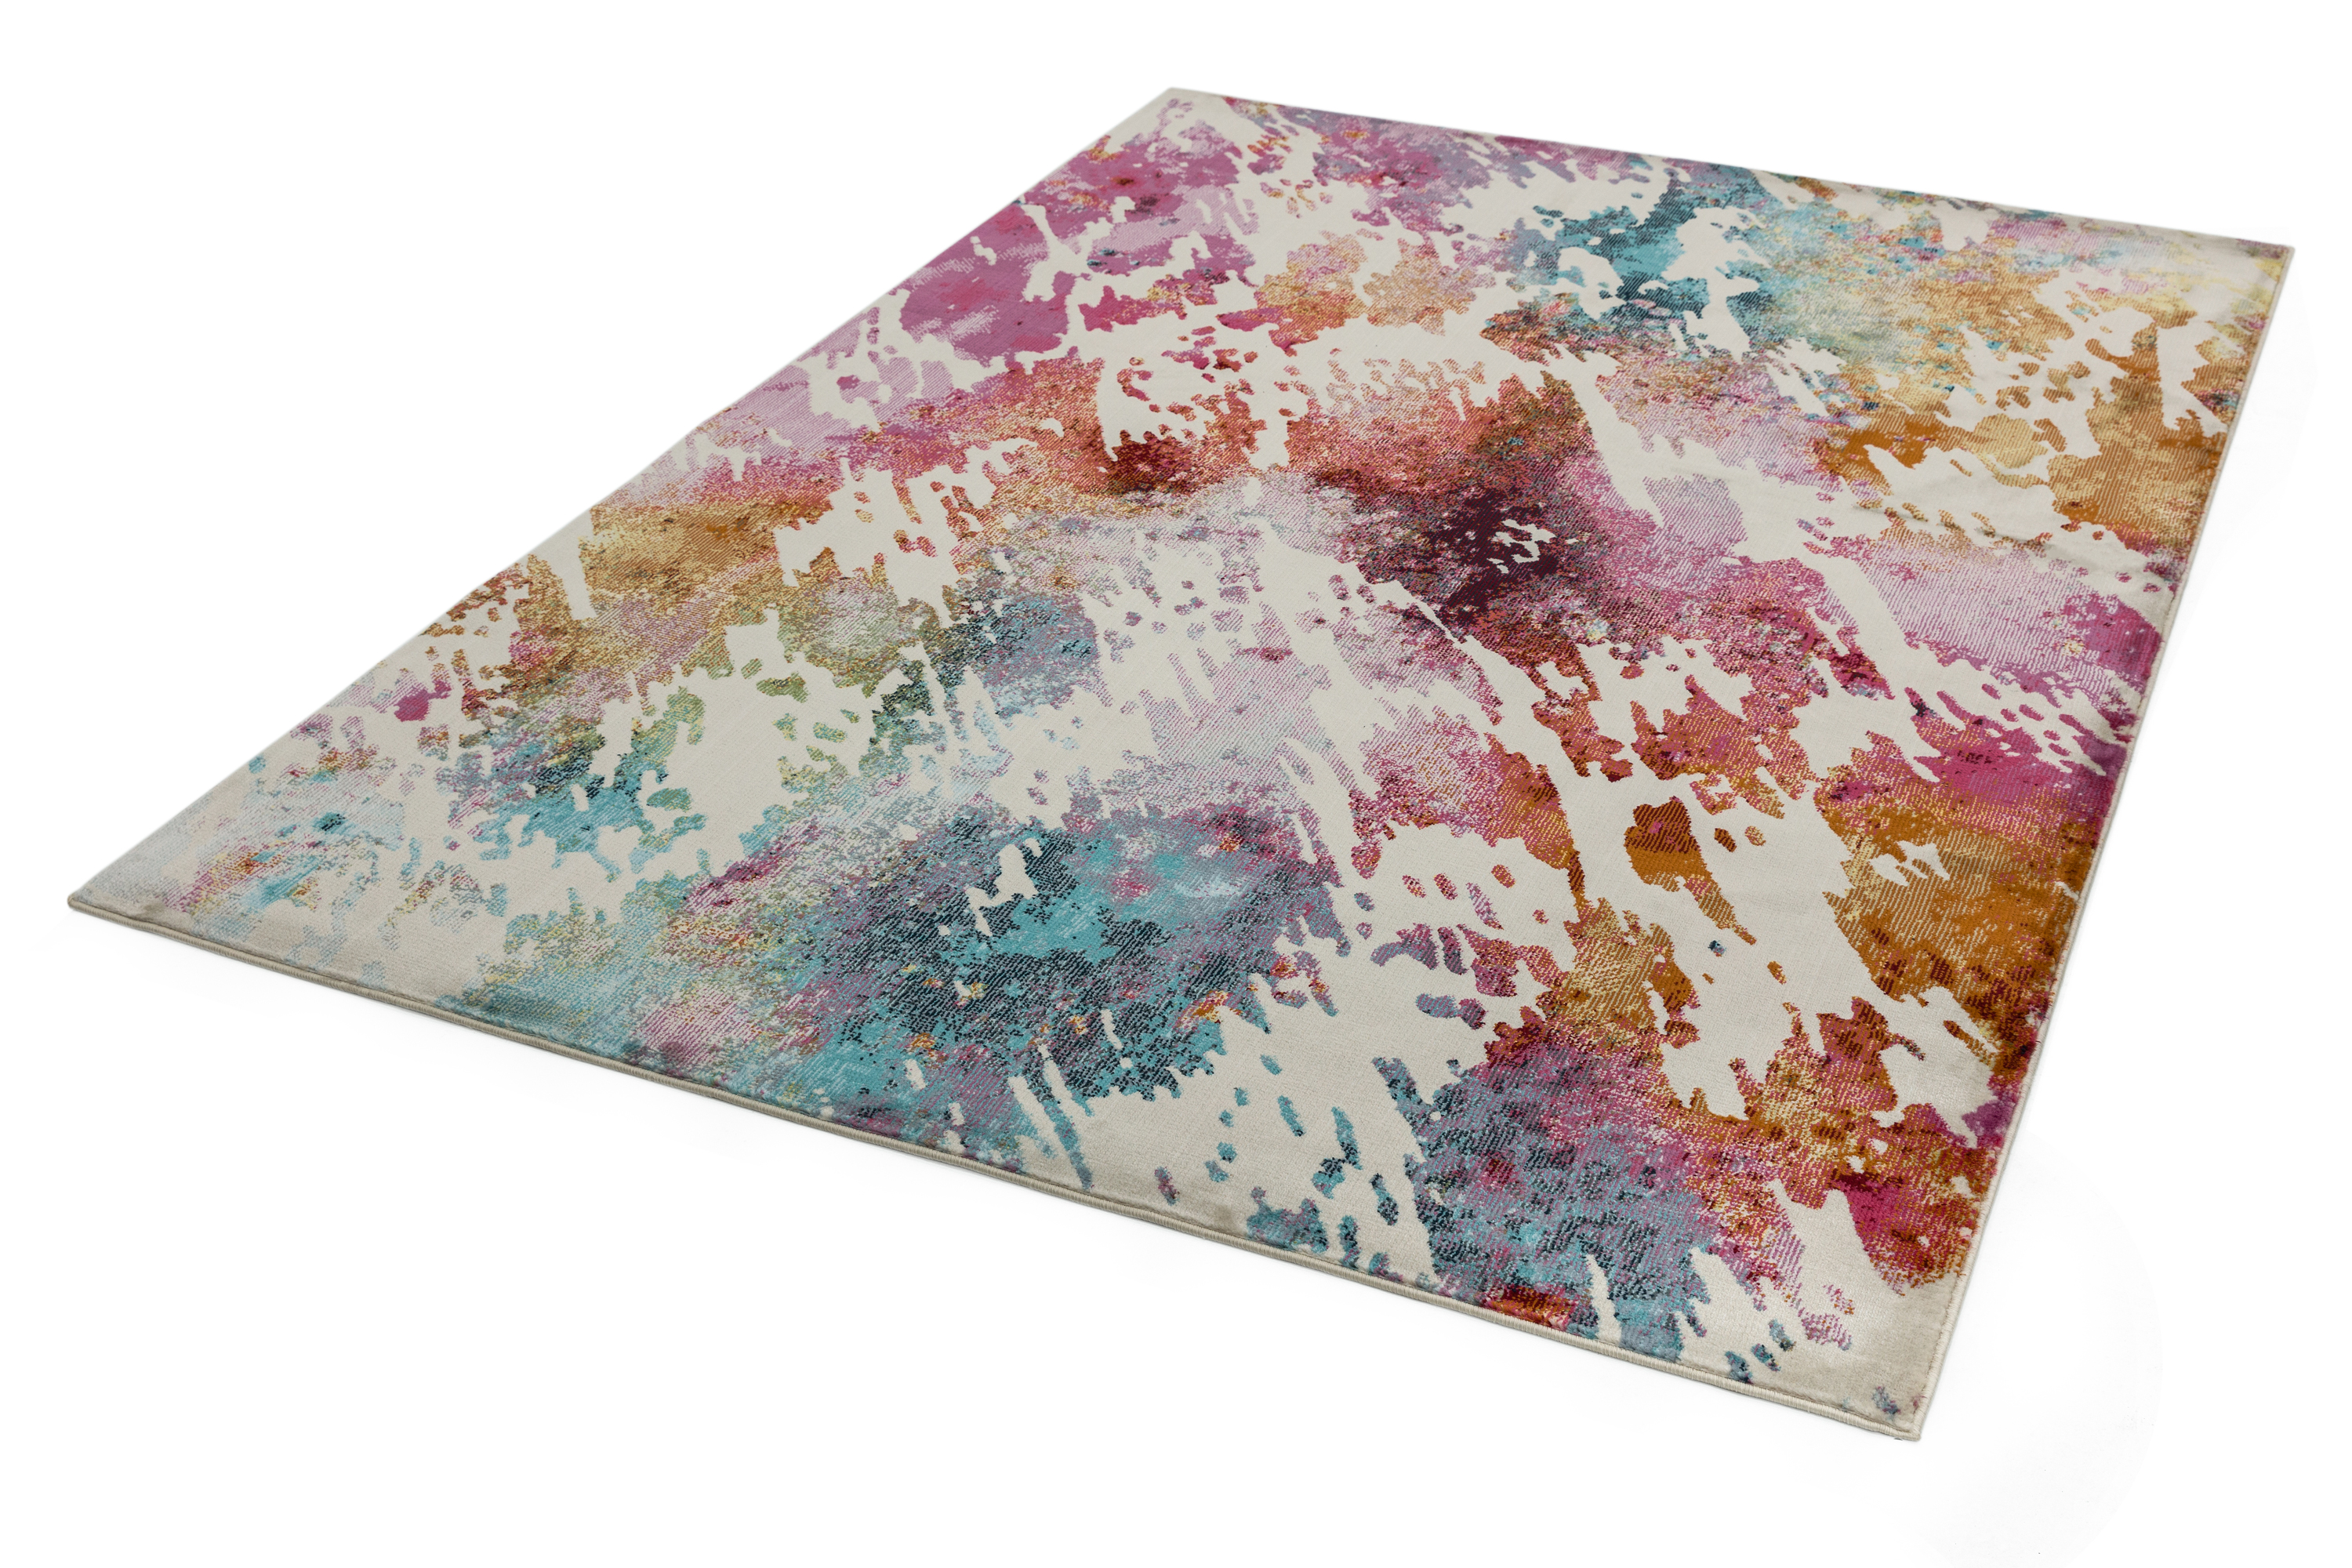 Amelie AM05 Watercolour Rug